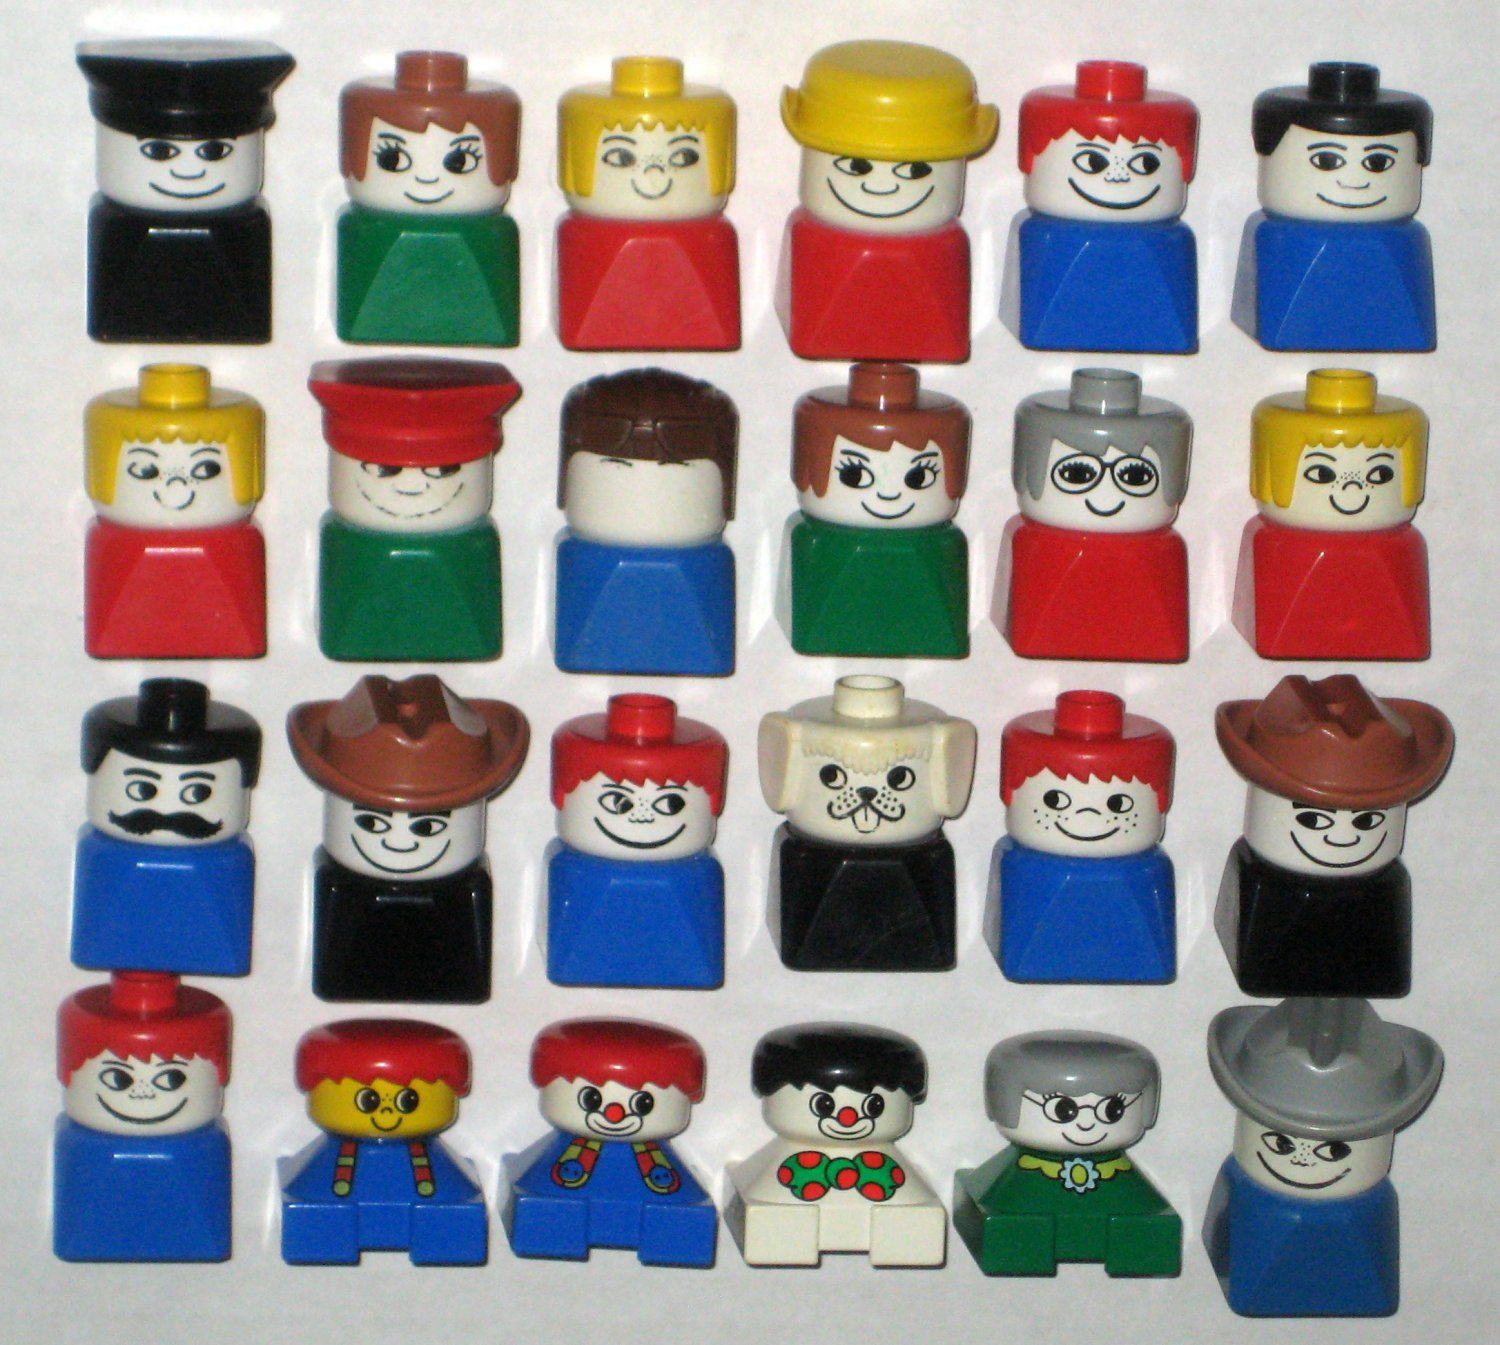 SOLD Lego Duplo Bust Tall Short People Figures 24 Parts Clown Cowboy Dog Boy Girl Police